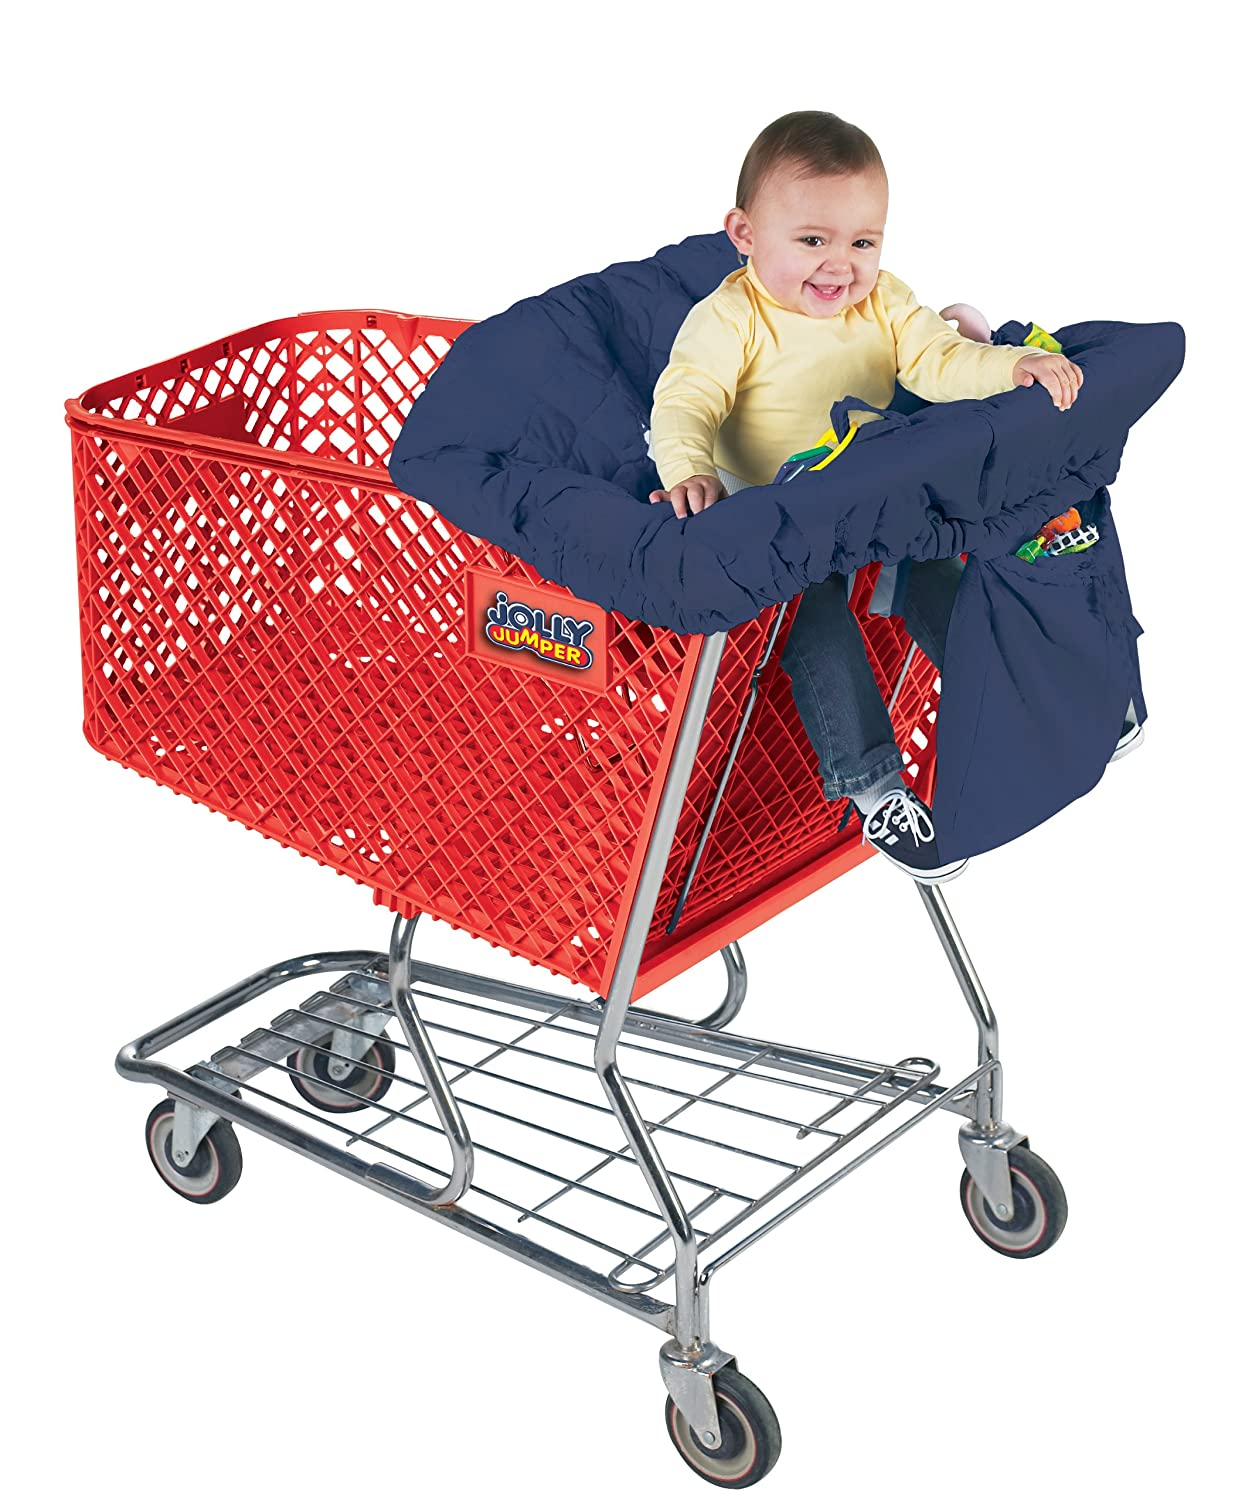 Jolly Jumper - Sani-Shopper Shopping Cart Cover With Safety Belt 716-77